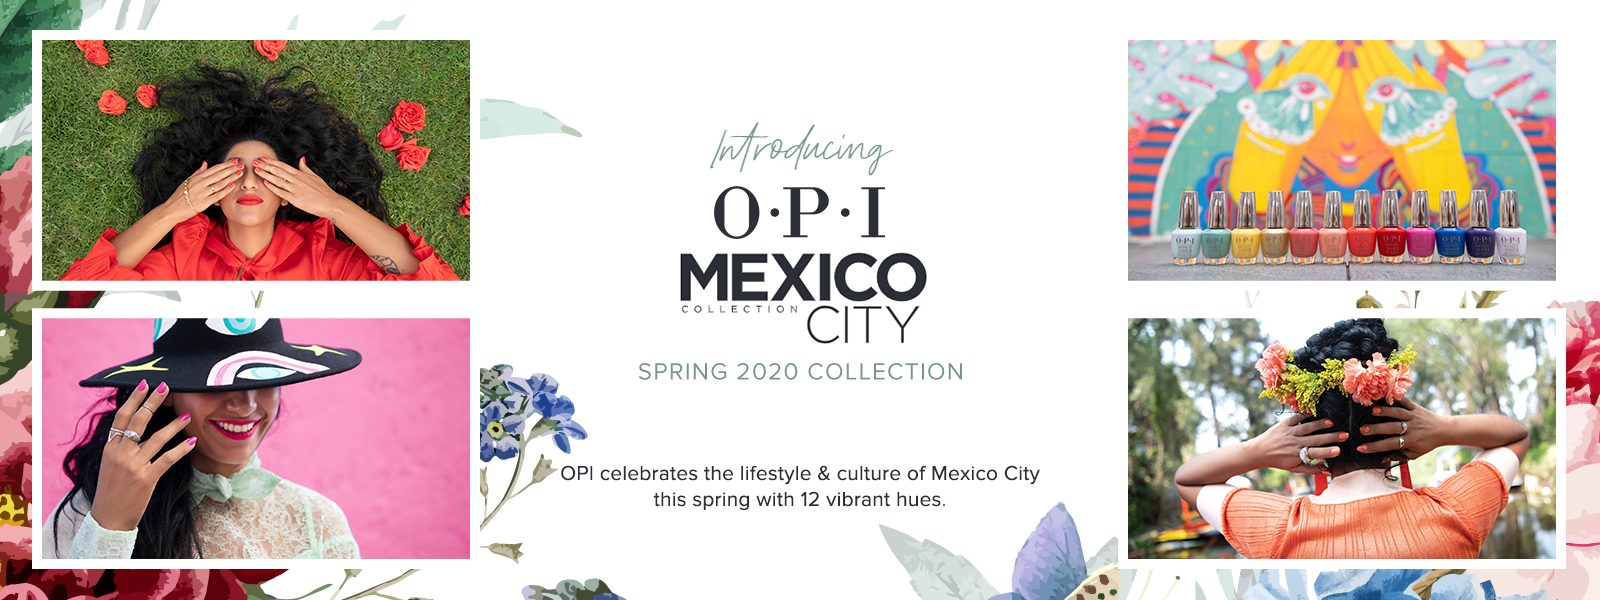 OPI Mexico City 2020 Nail Polish, Gel Polish